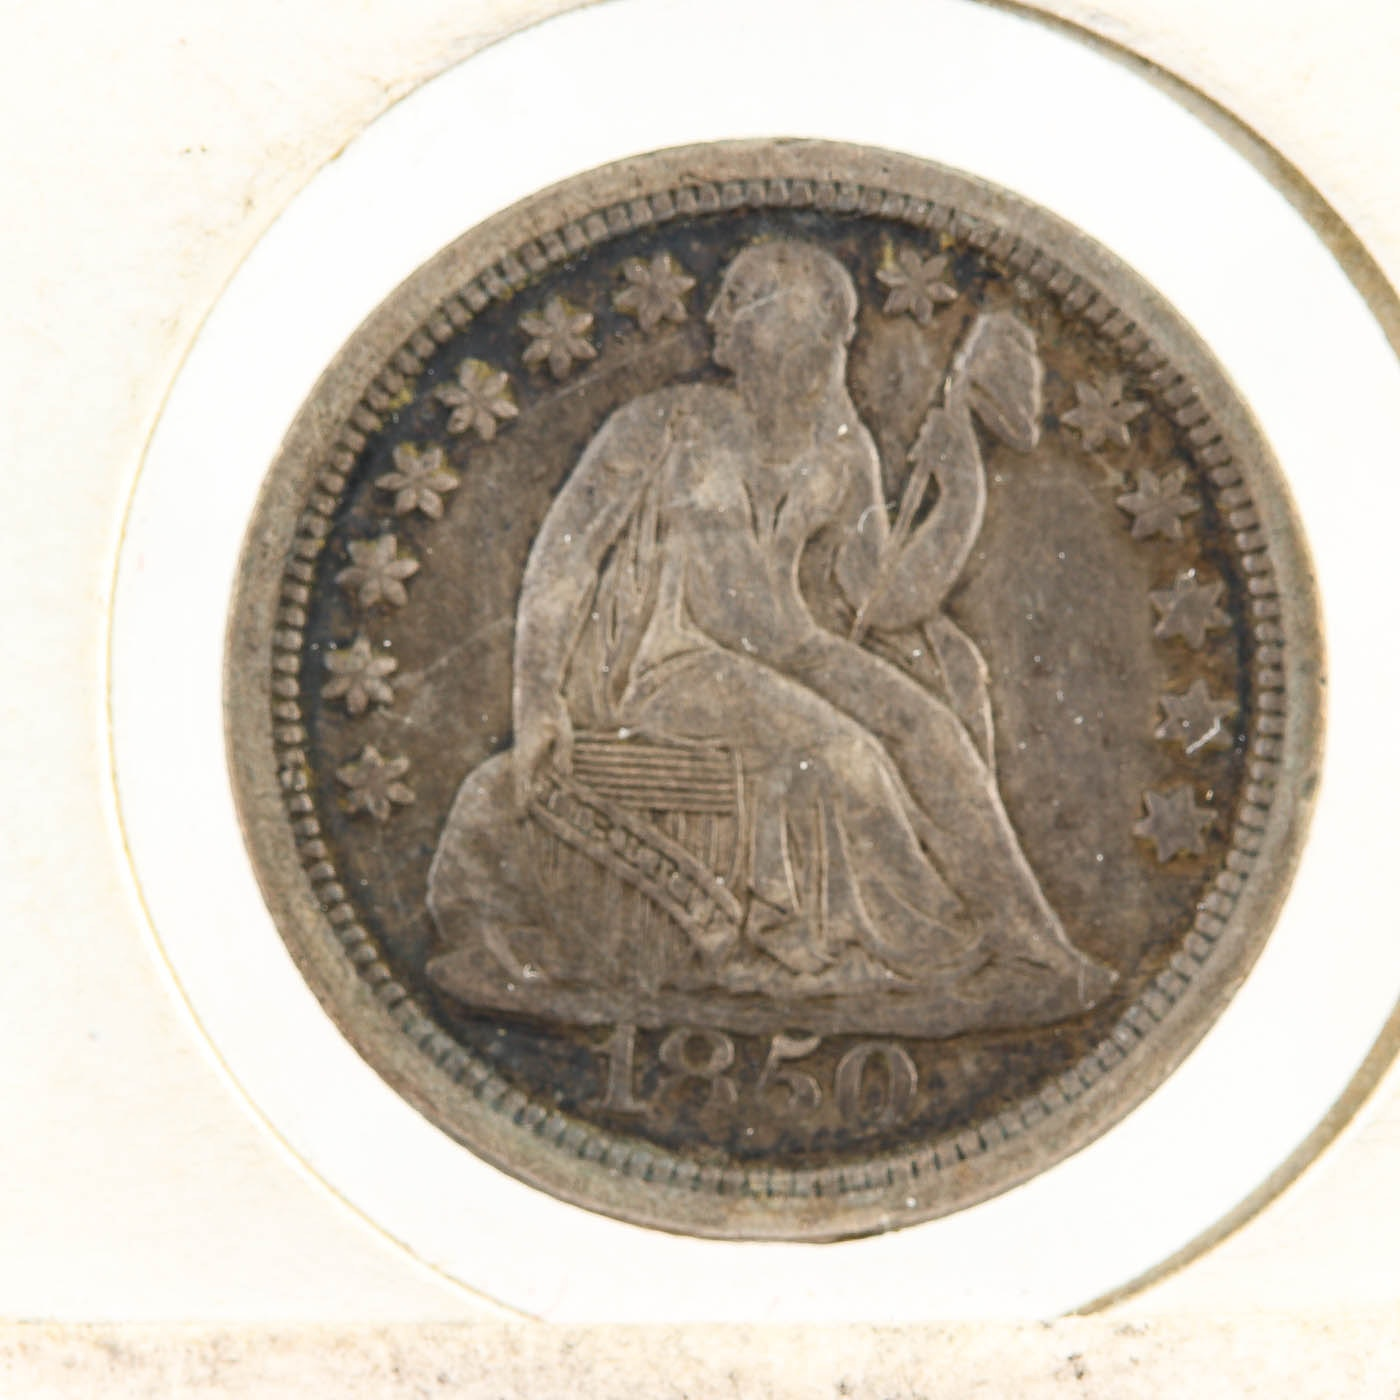 1850 Seated Liberty Silver Dime